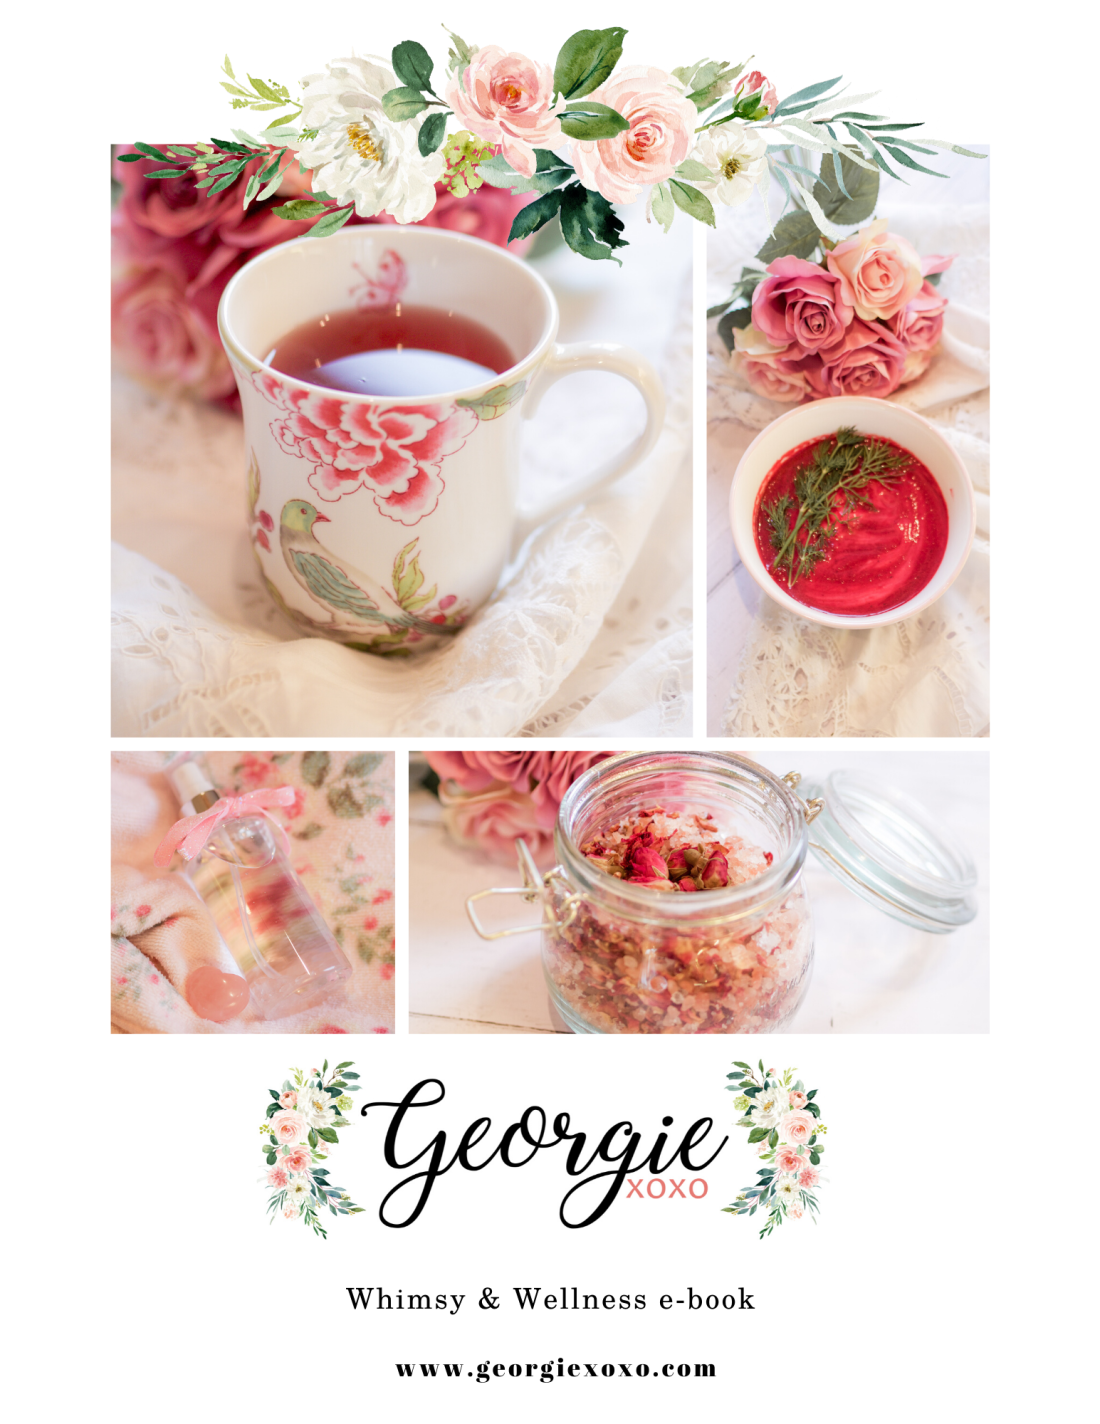 whimsy wellness ebook by georgie xoxo